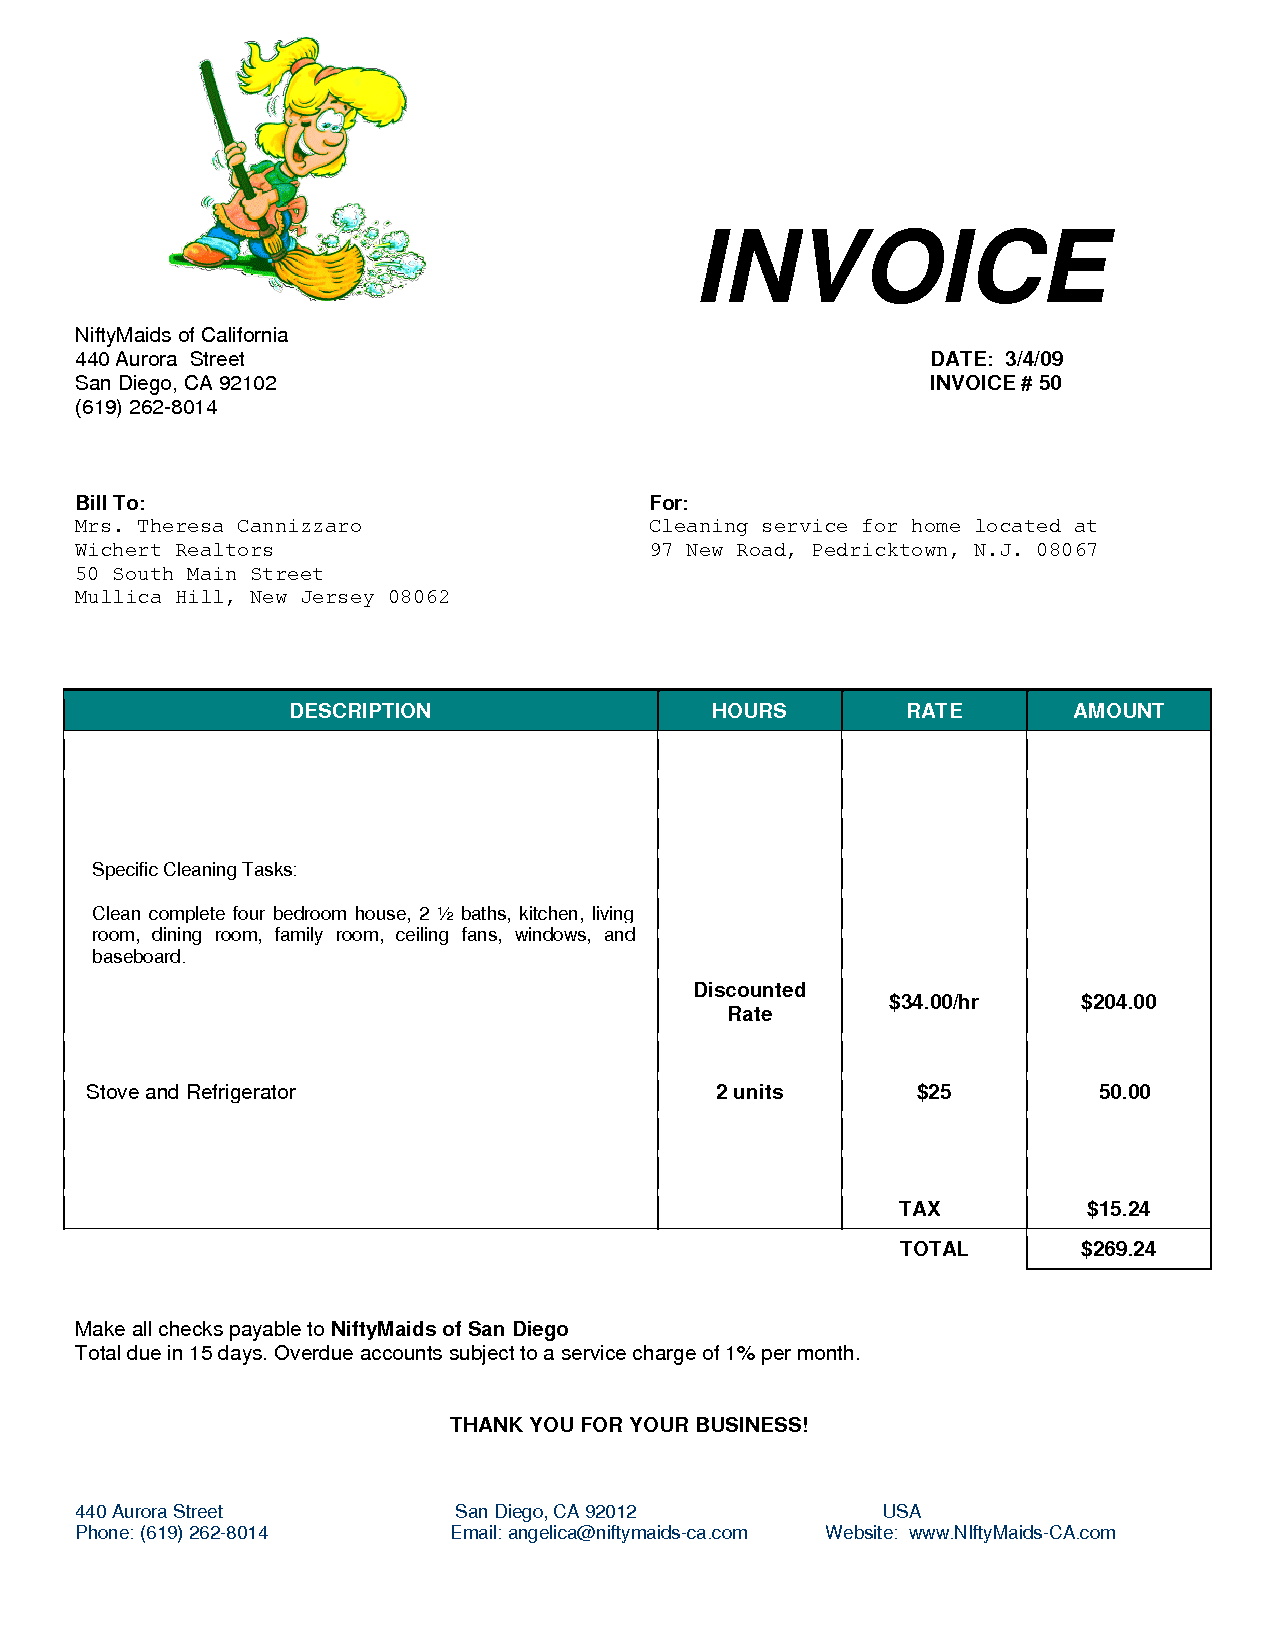 Cleaning Bill Invoice Services Invoice Ideas For The House - Cleaning invoice template free for service business